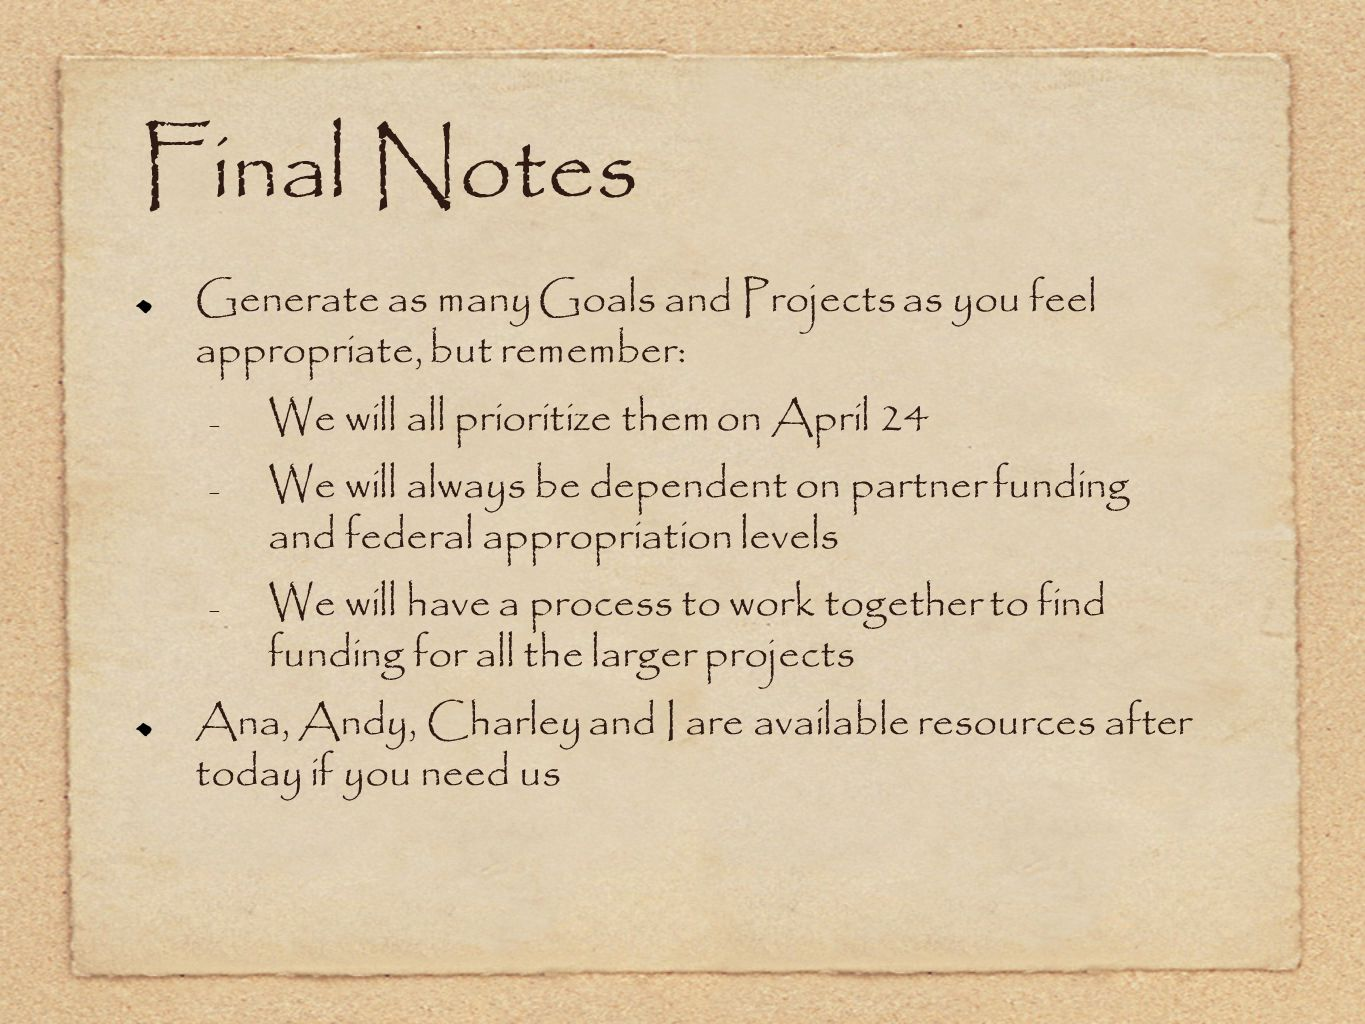 Final Notes Generate as many Goals and Projects as you feel appropriate, but remember: – We will all prioritize them on April 24 – We will always be dependent on partner funding and federal appropriation levels – We will have a process to work together to find funding for all the larger projects Ana, Andy, Charley and I are available resources after today if you need us